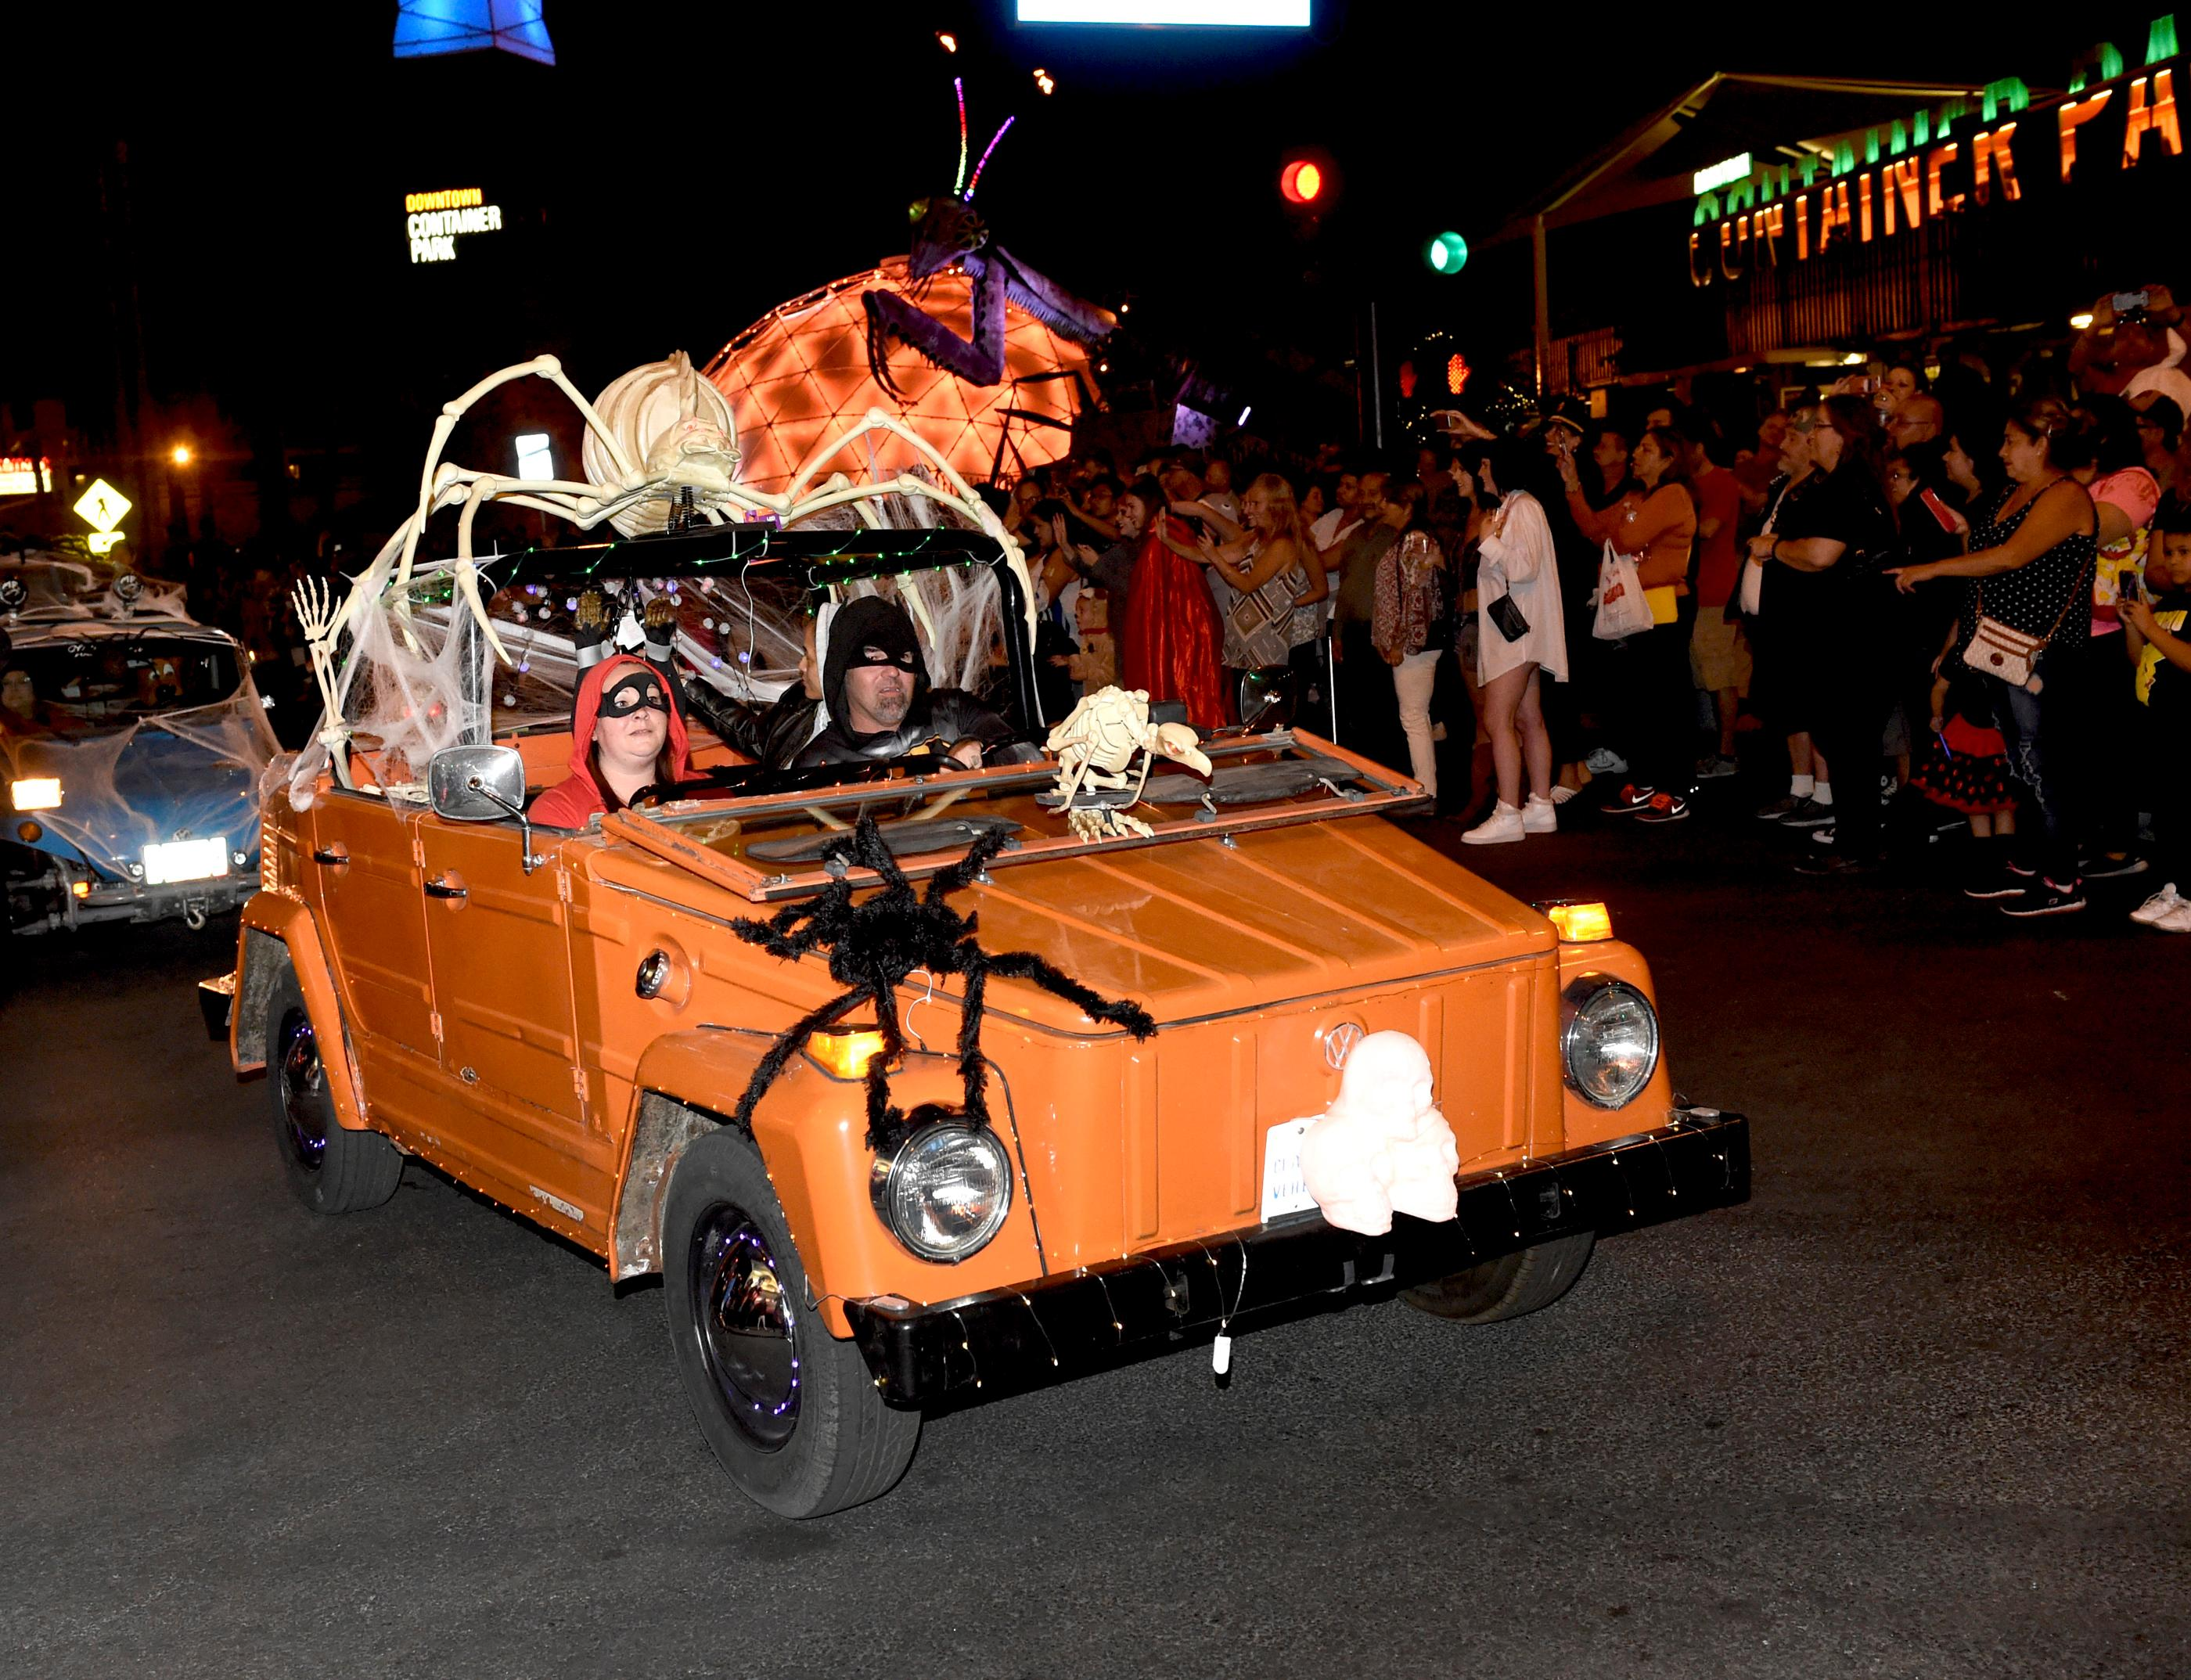 Crowds gather to watch and participate in the Sin City Halloween Parade in the East Fremont District. Saturday, October 28, 2017. [Glenn Pinkerton/Las Vegas News Bureau]